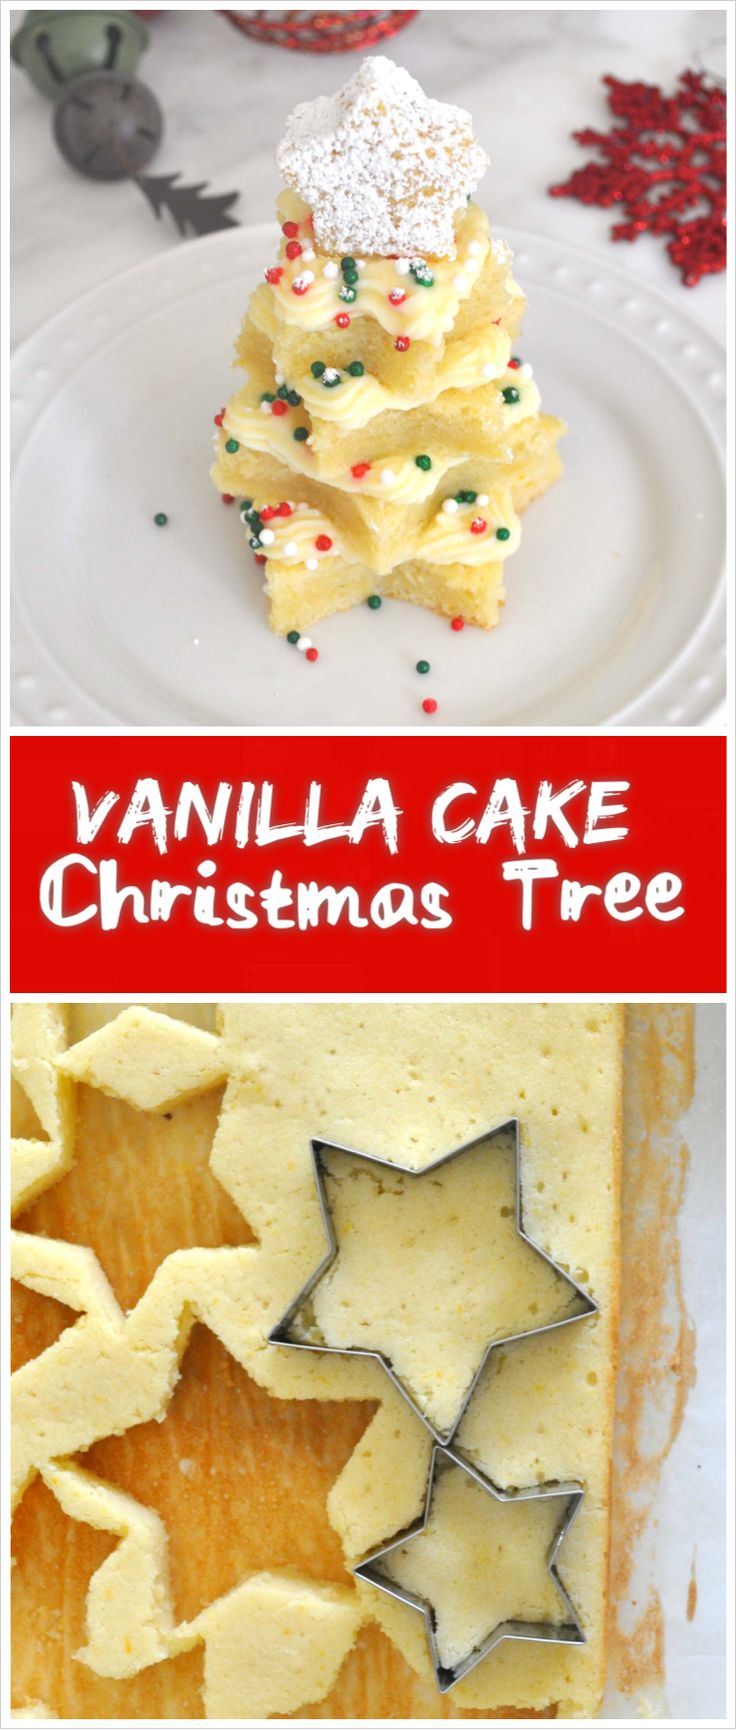 These cute Christmas tree vanilla cakes stuffed with rich custard cream, and decorated with colorful sprinkles are the perfect way to  make your holiday sweeter